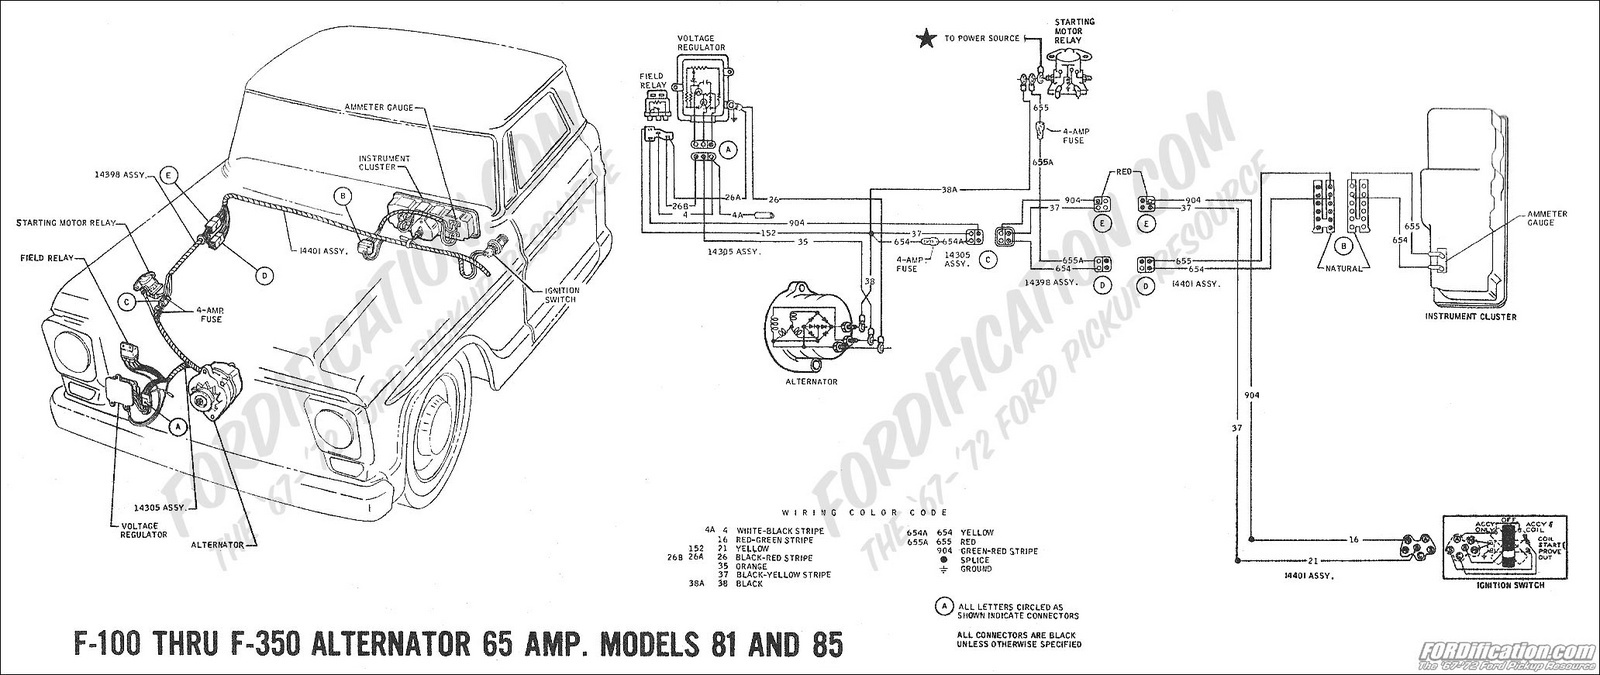 Wiring Diagram For 1969 Ford F 100 Pick Up Circuit Symbols Ranchero Questions I Have A 73 No Power To The S Rh Cargurus Com E